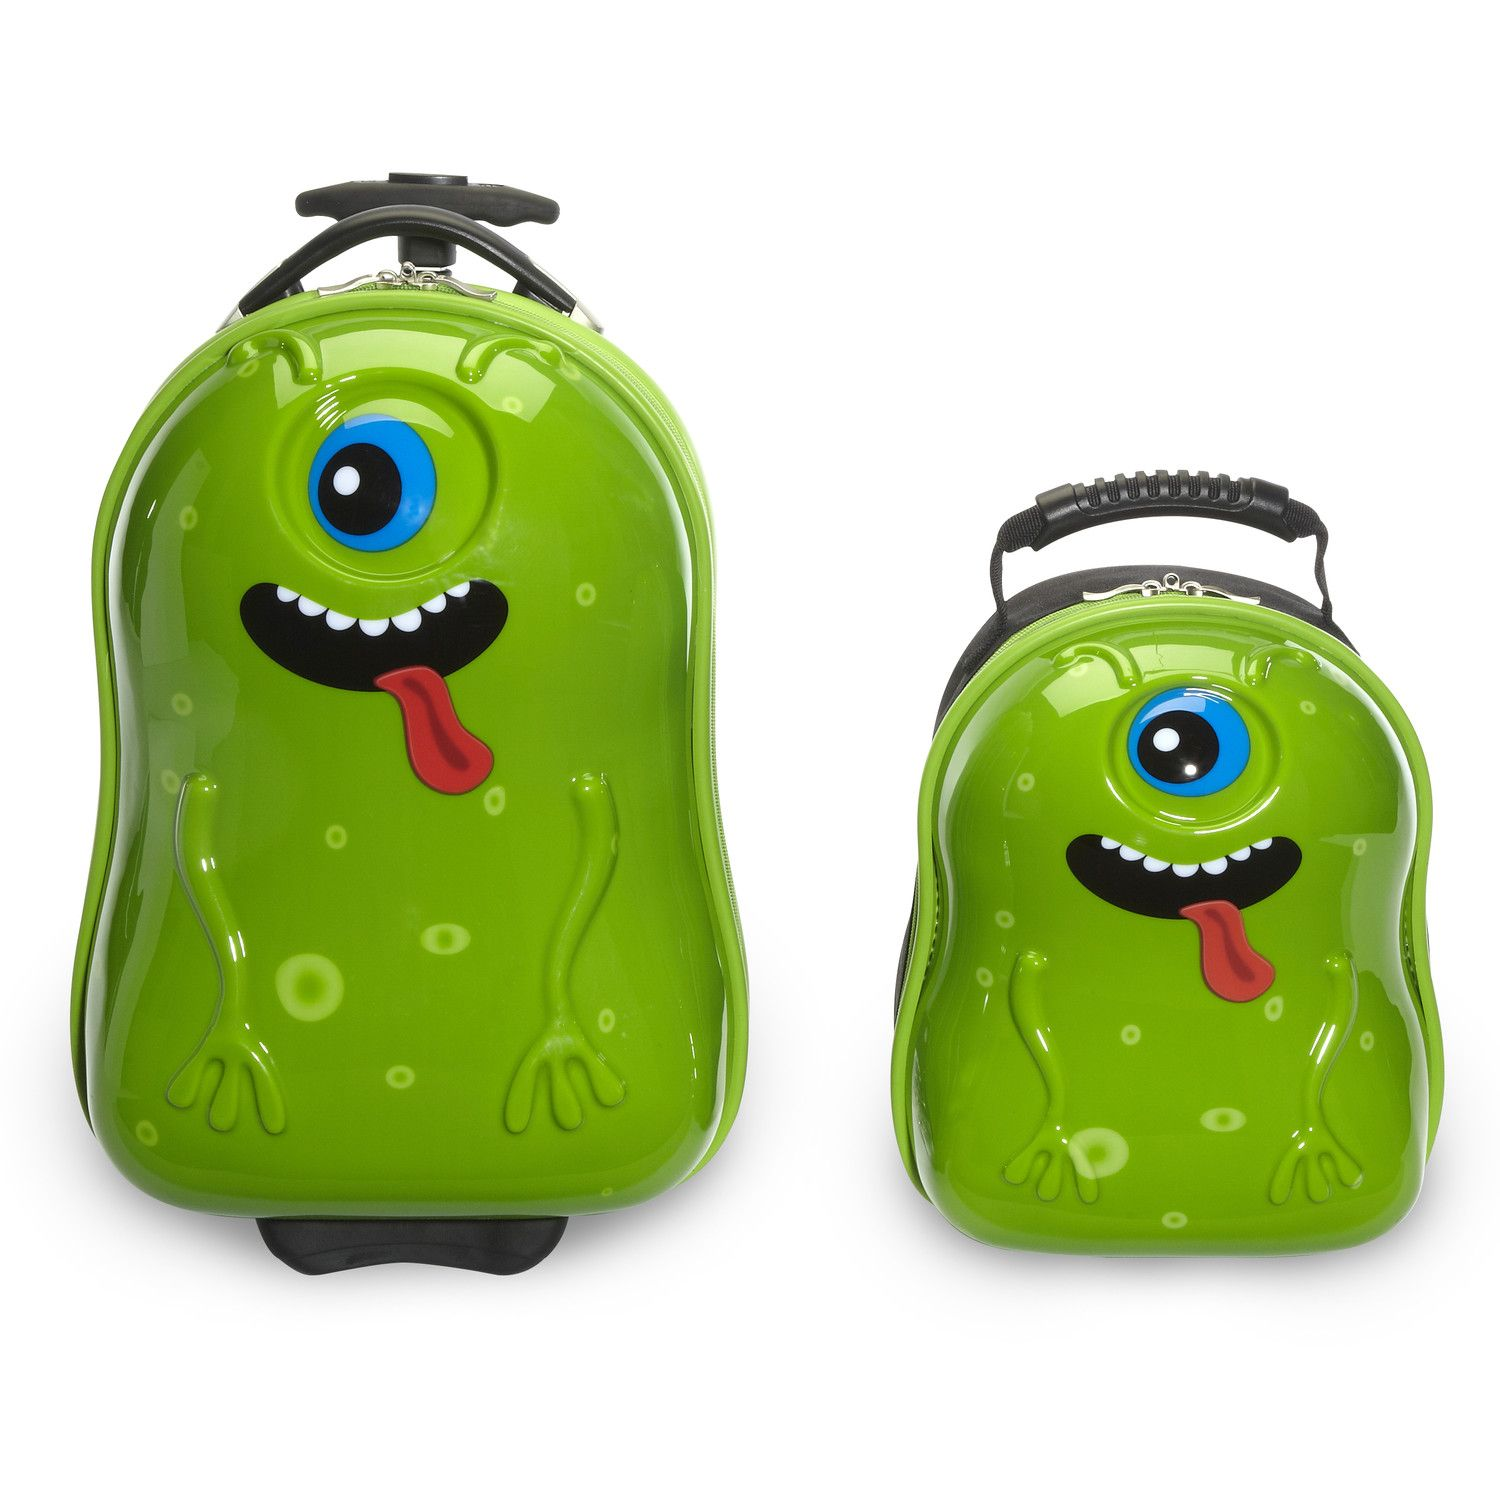 TrendyKid 2 Piece Archie Alien Children's Luggage Set http ...